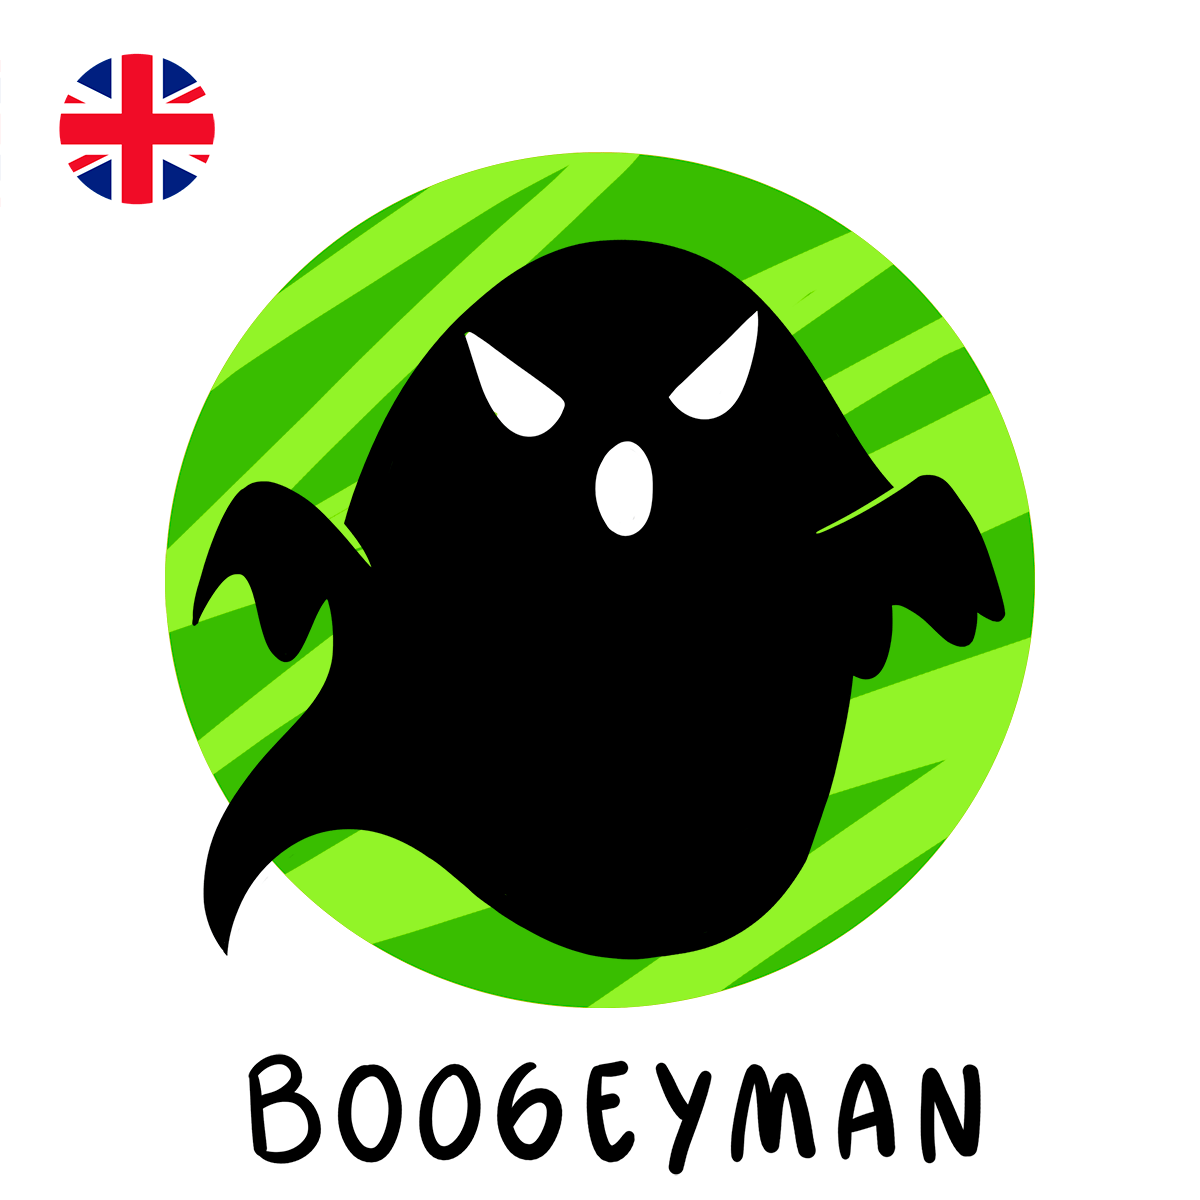 Boogeyman ghost illustration